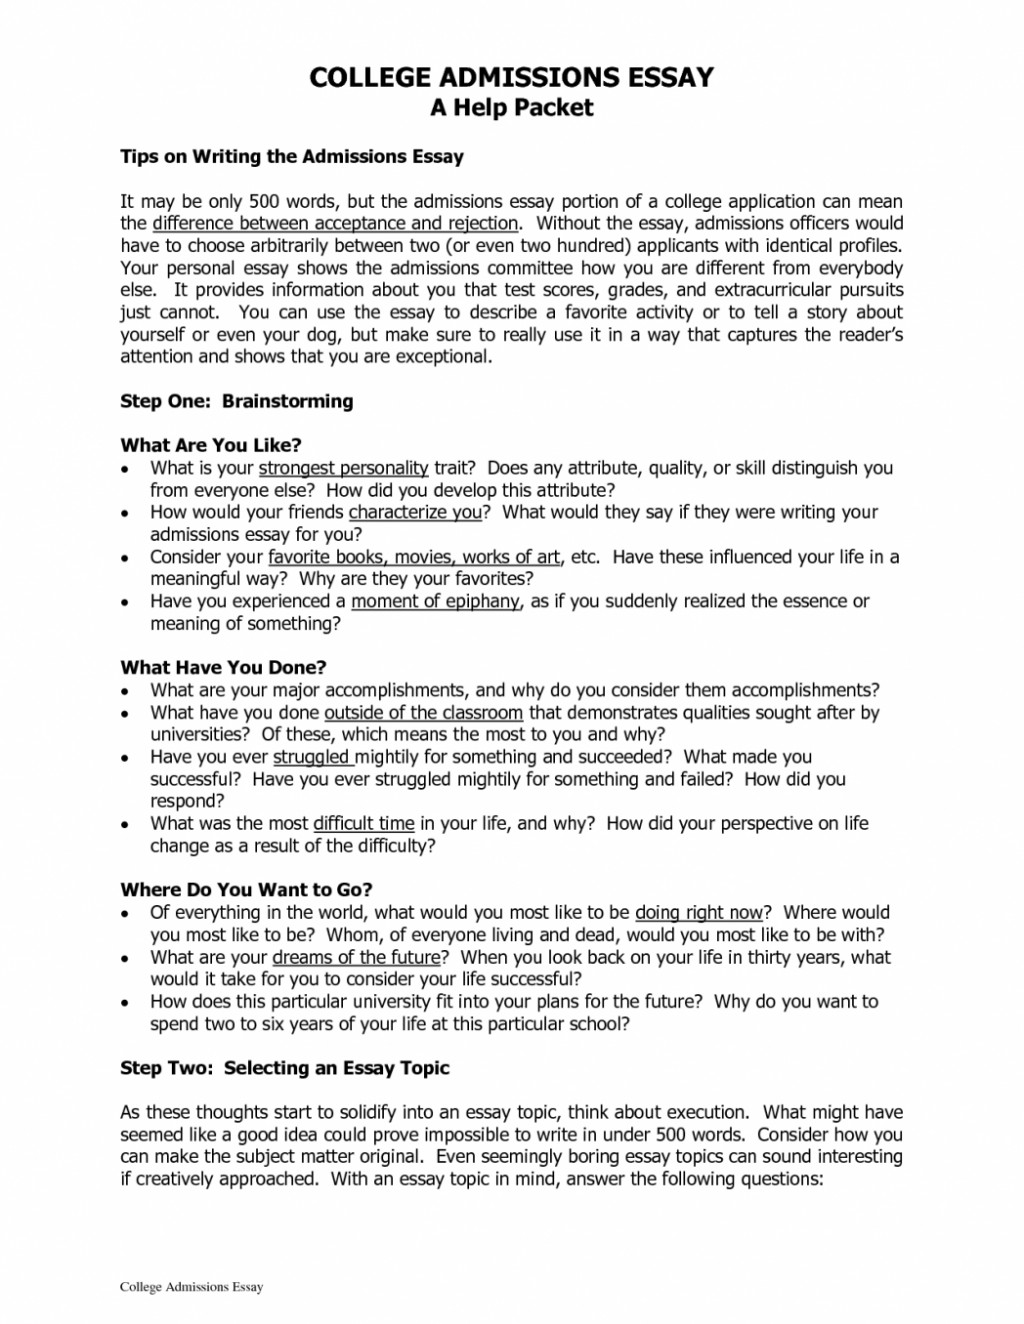 002 Essay Example Best Essays College App Sample Application Top Iyjxl Ever Examples Topics That Worked Reddit Breathtaking 2016 The American Audiobook Short Pdf Large